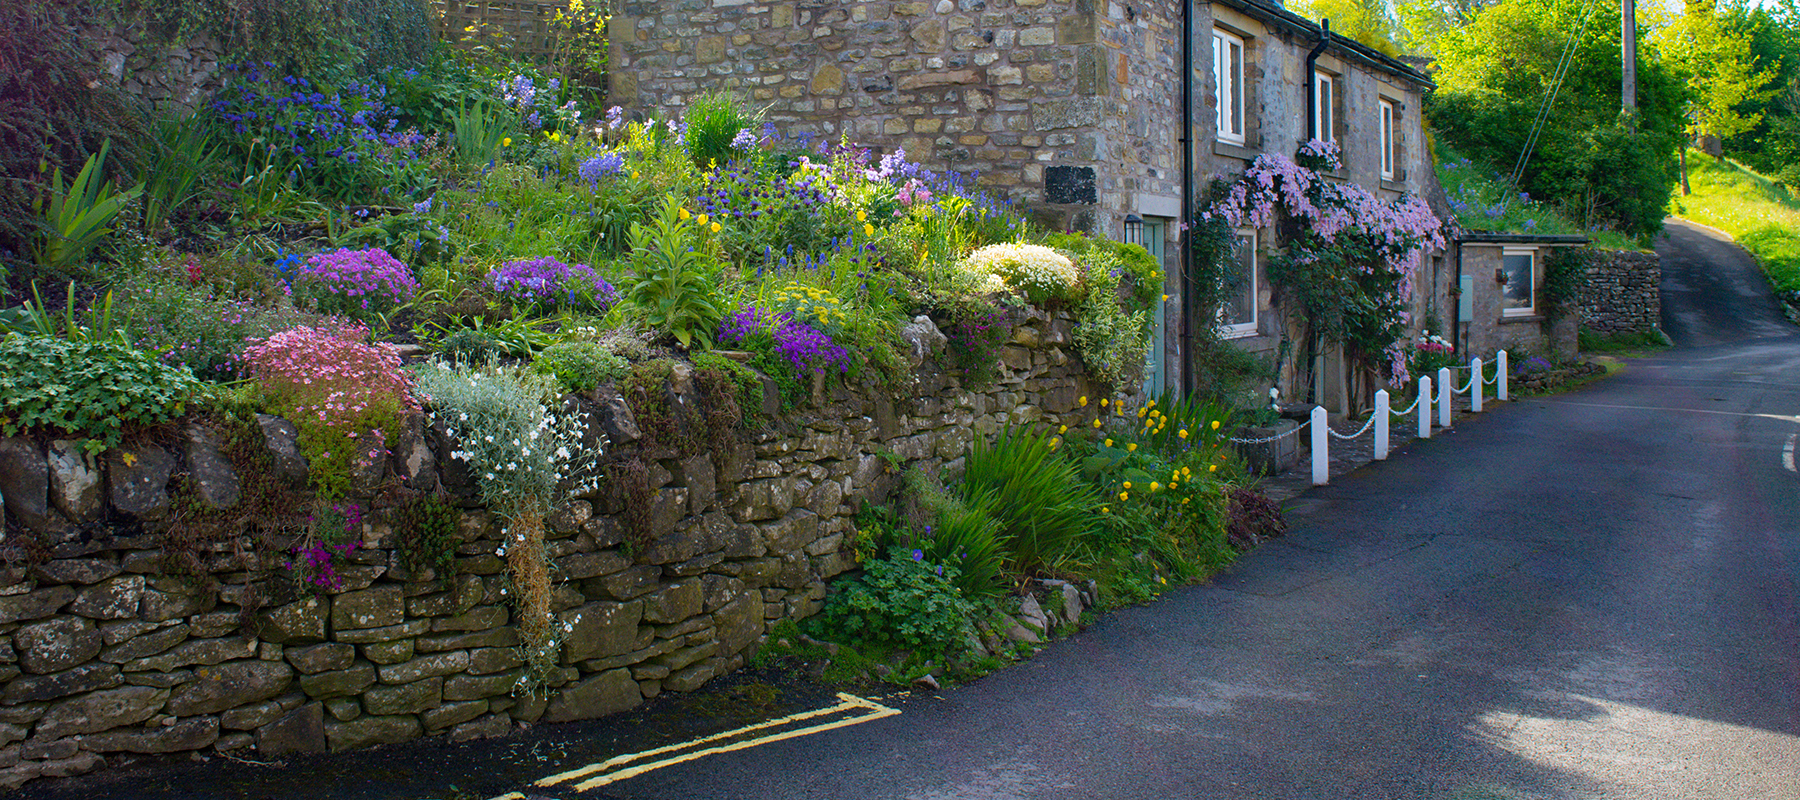 blooming flowers and road in front of English stone cottage